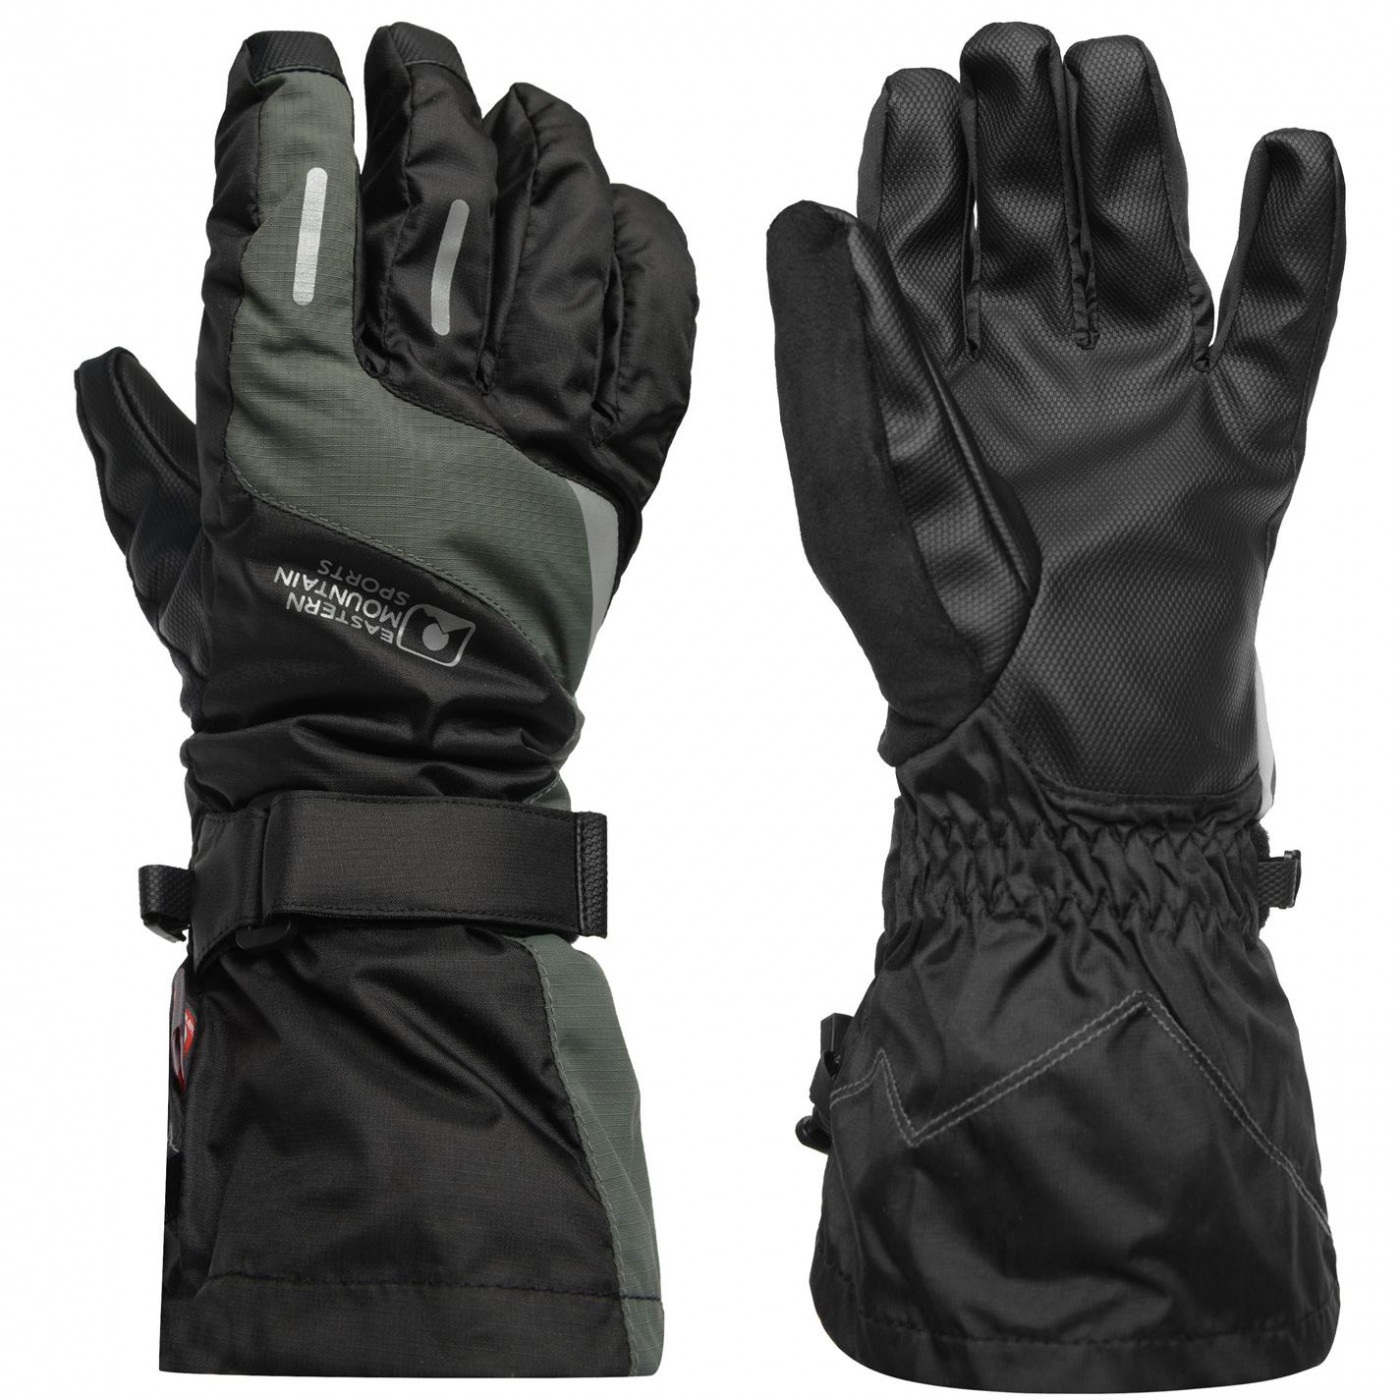 Eastern Mountain Sports W 3 in 1 Glove Ld91